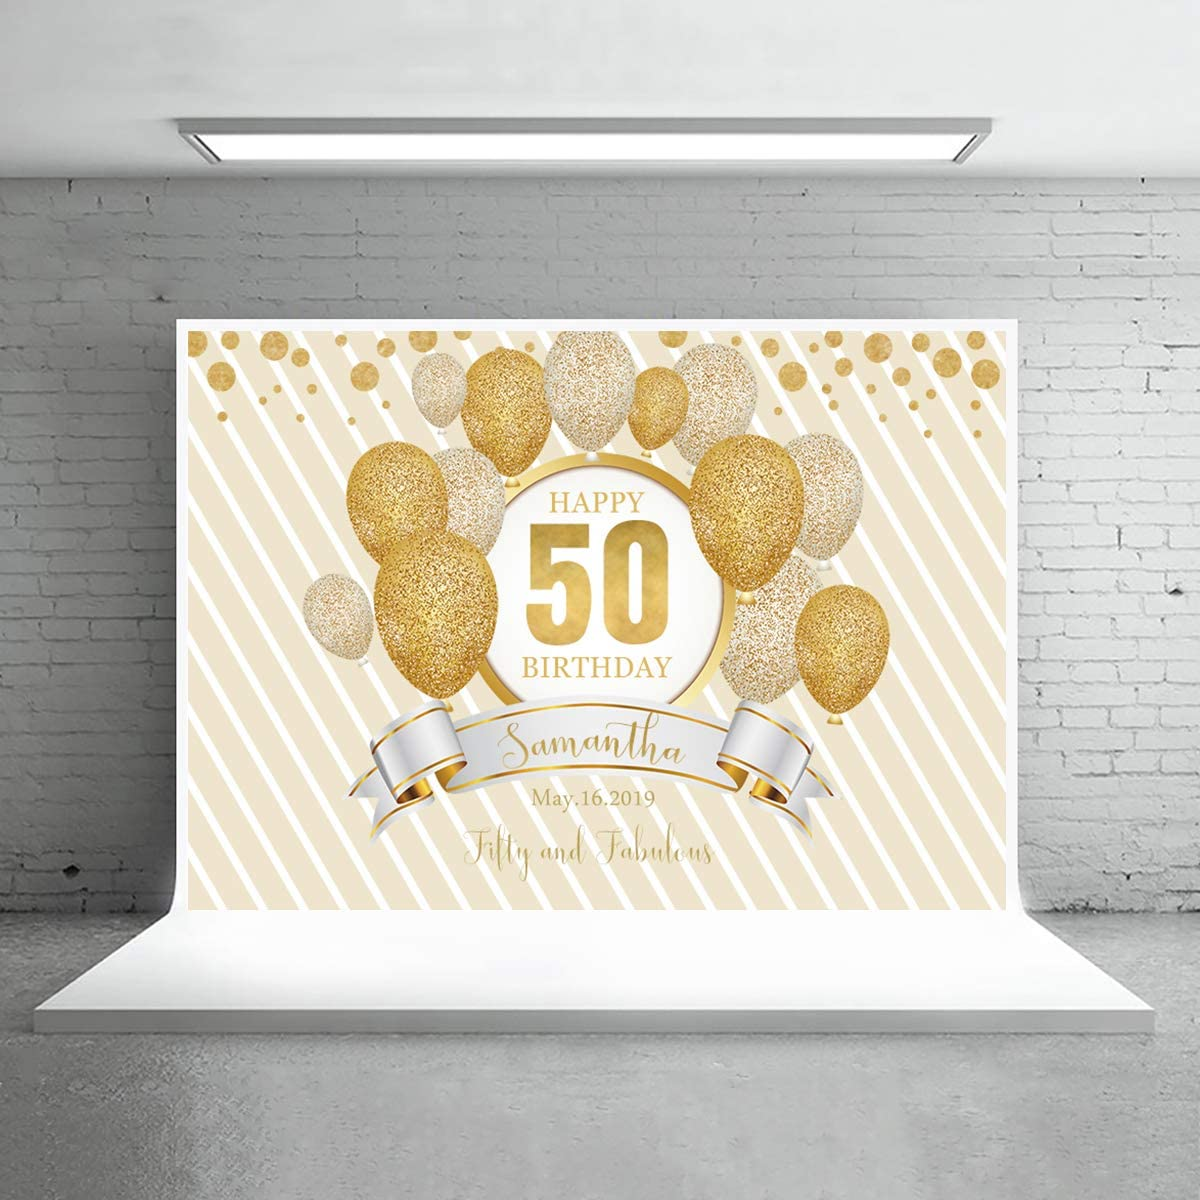 7x5ft,sxy1364 Levoo Memorial Day Ceremony Background Banner Photography Studio Birthday Family Party Holiday Celebration Romantic Wedding Photography Backdrop Home Decoration Customizable Words